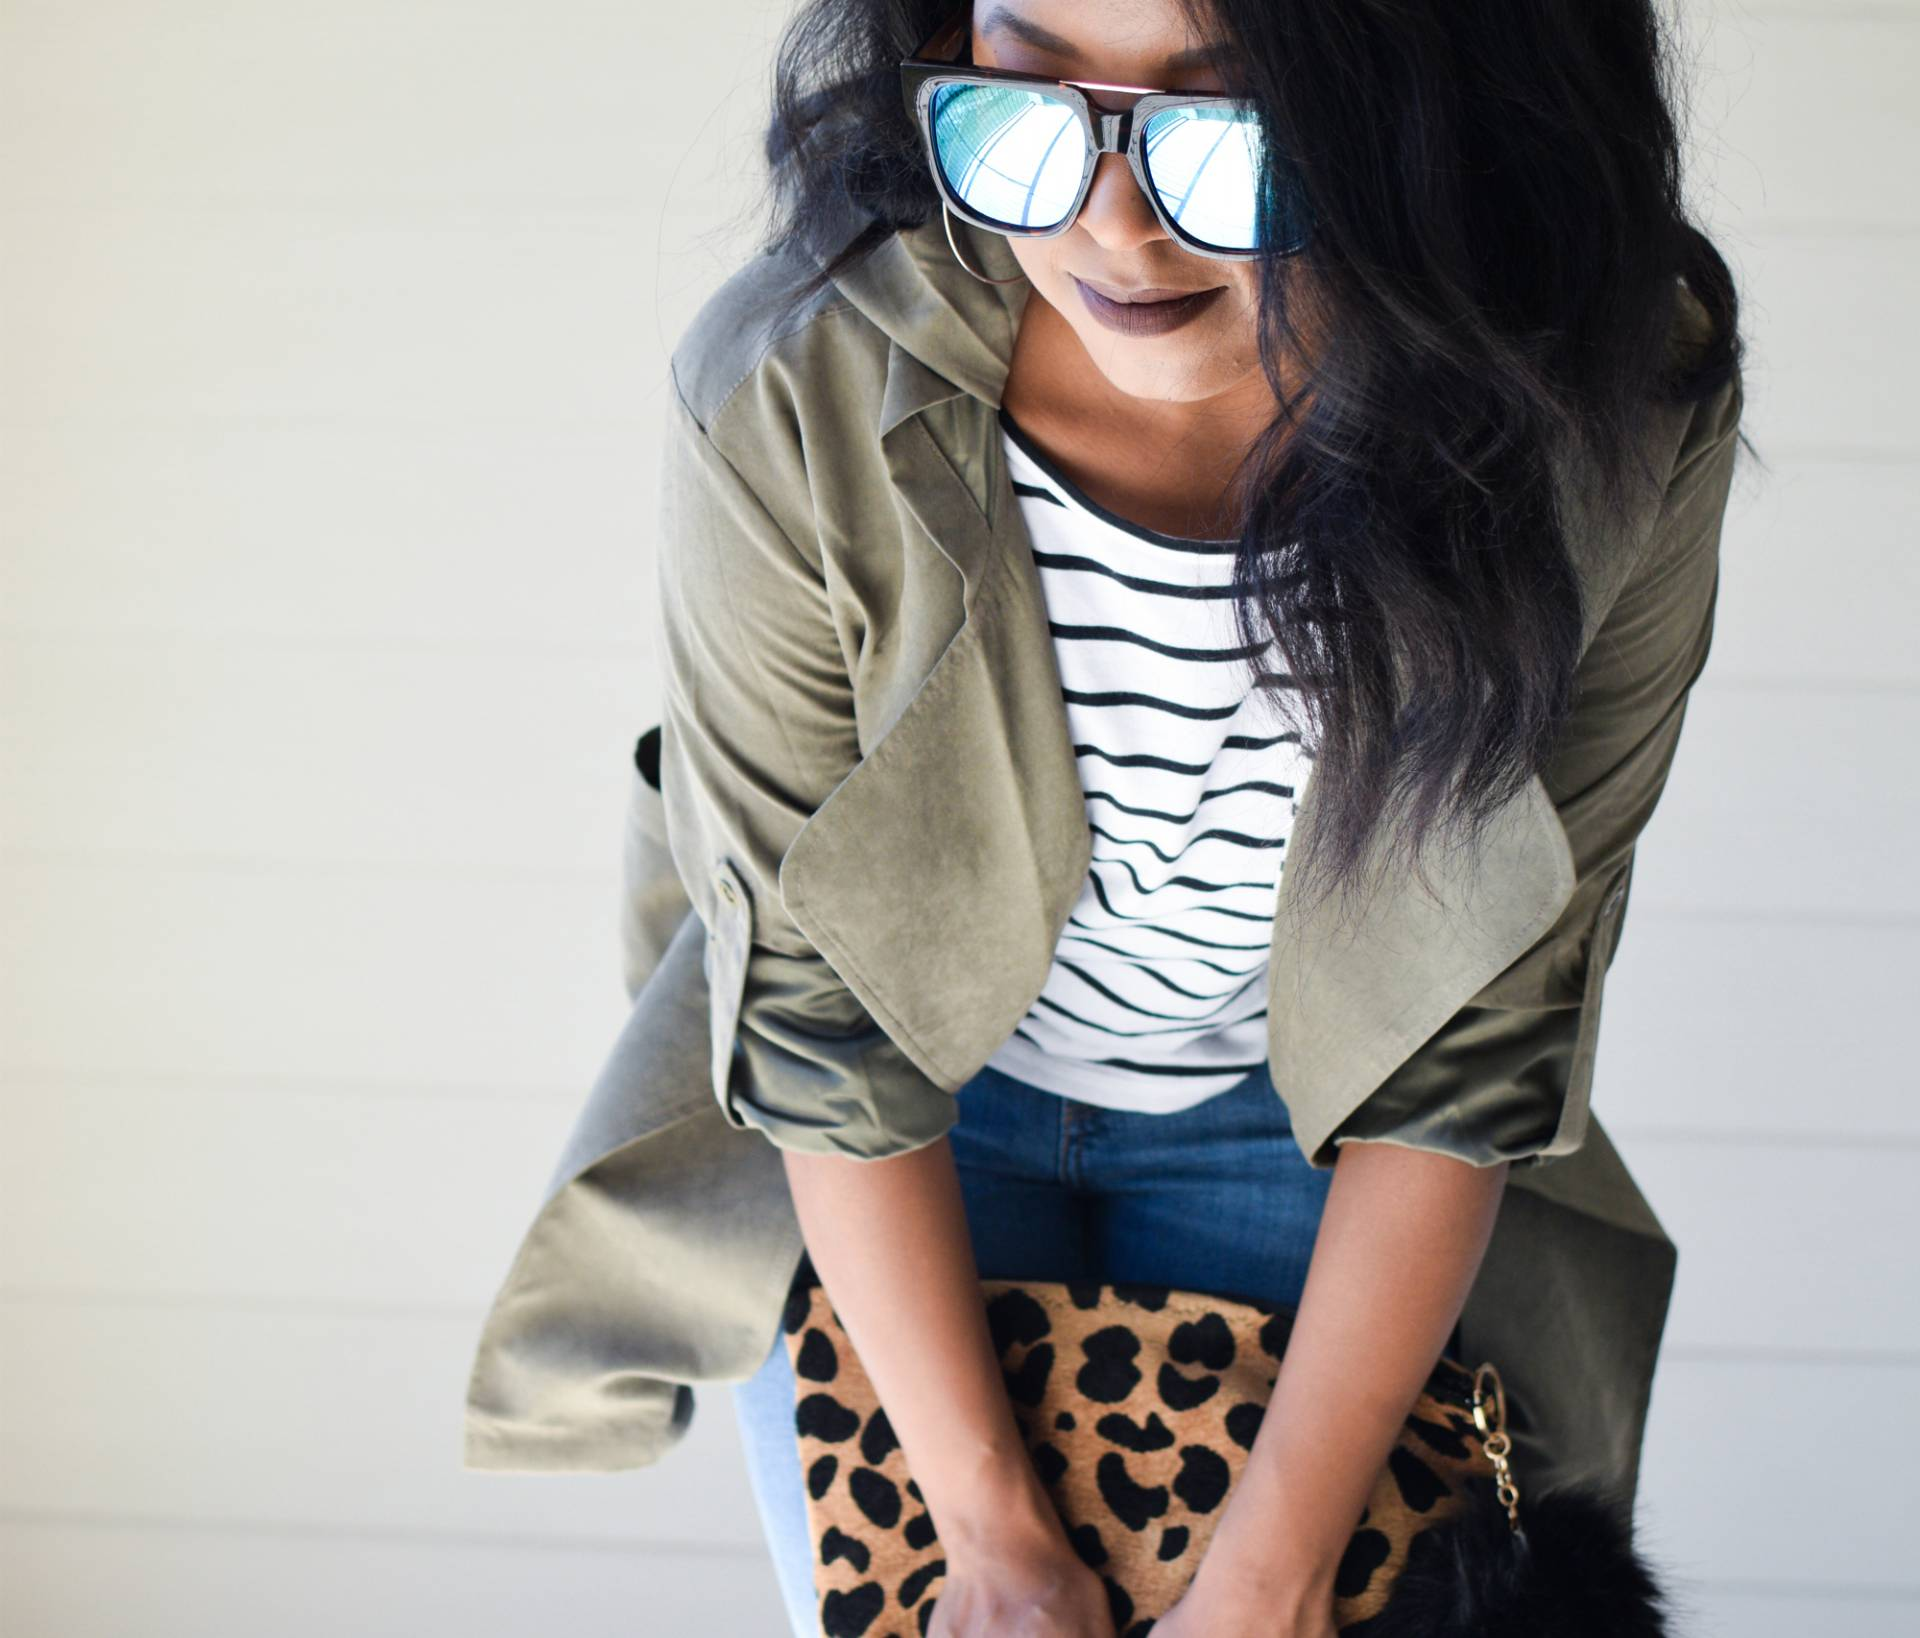 Olive Green Jacket + Striped Tee